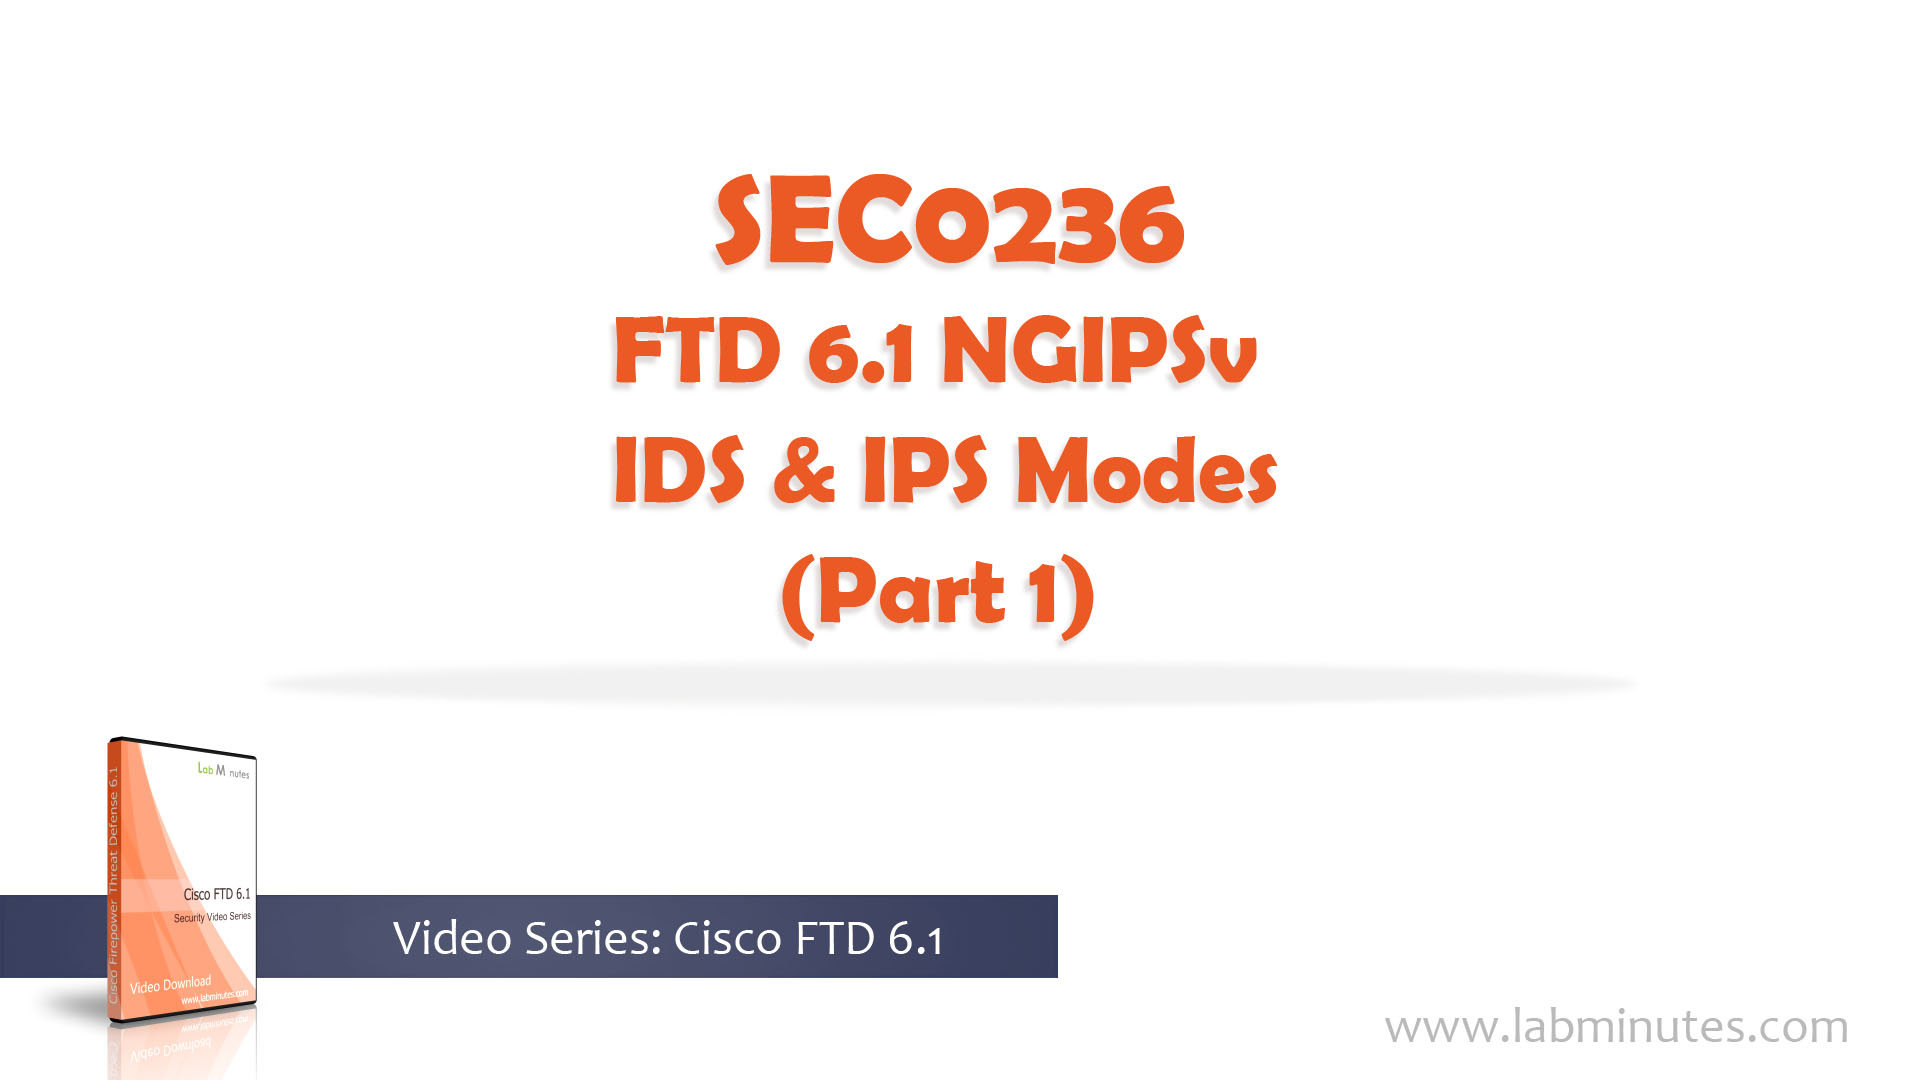 How to Configure FTD 6 1 NGIPSv IDS and IPS Modes (Part 1)